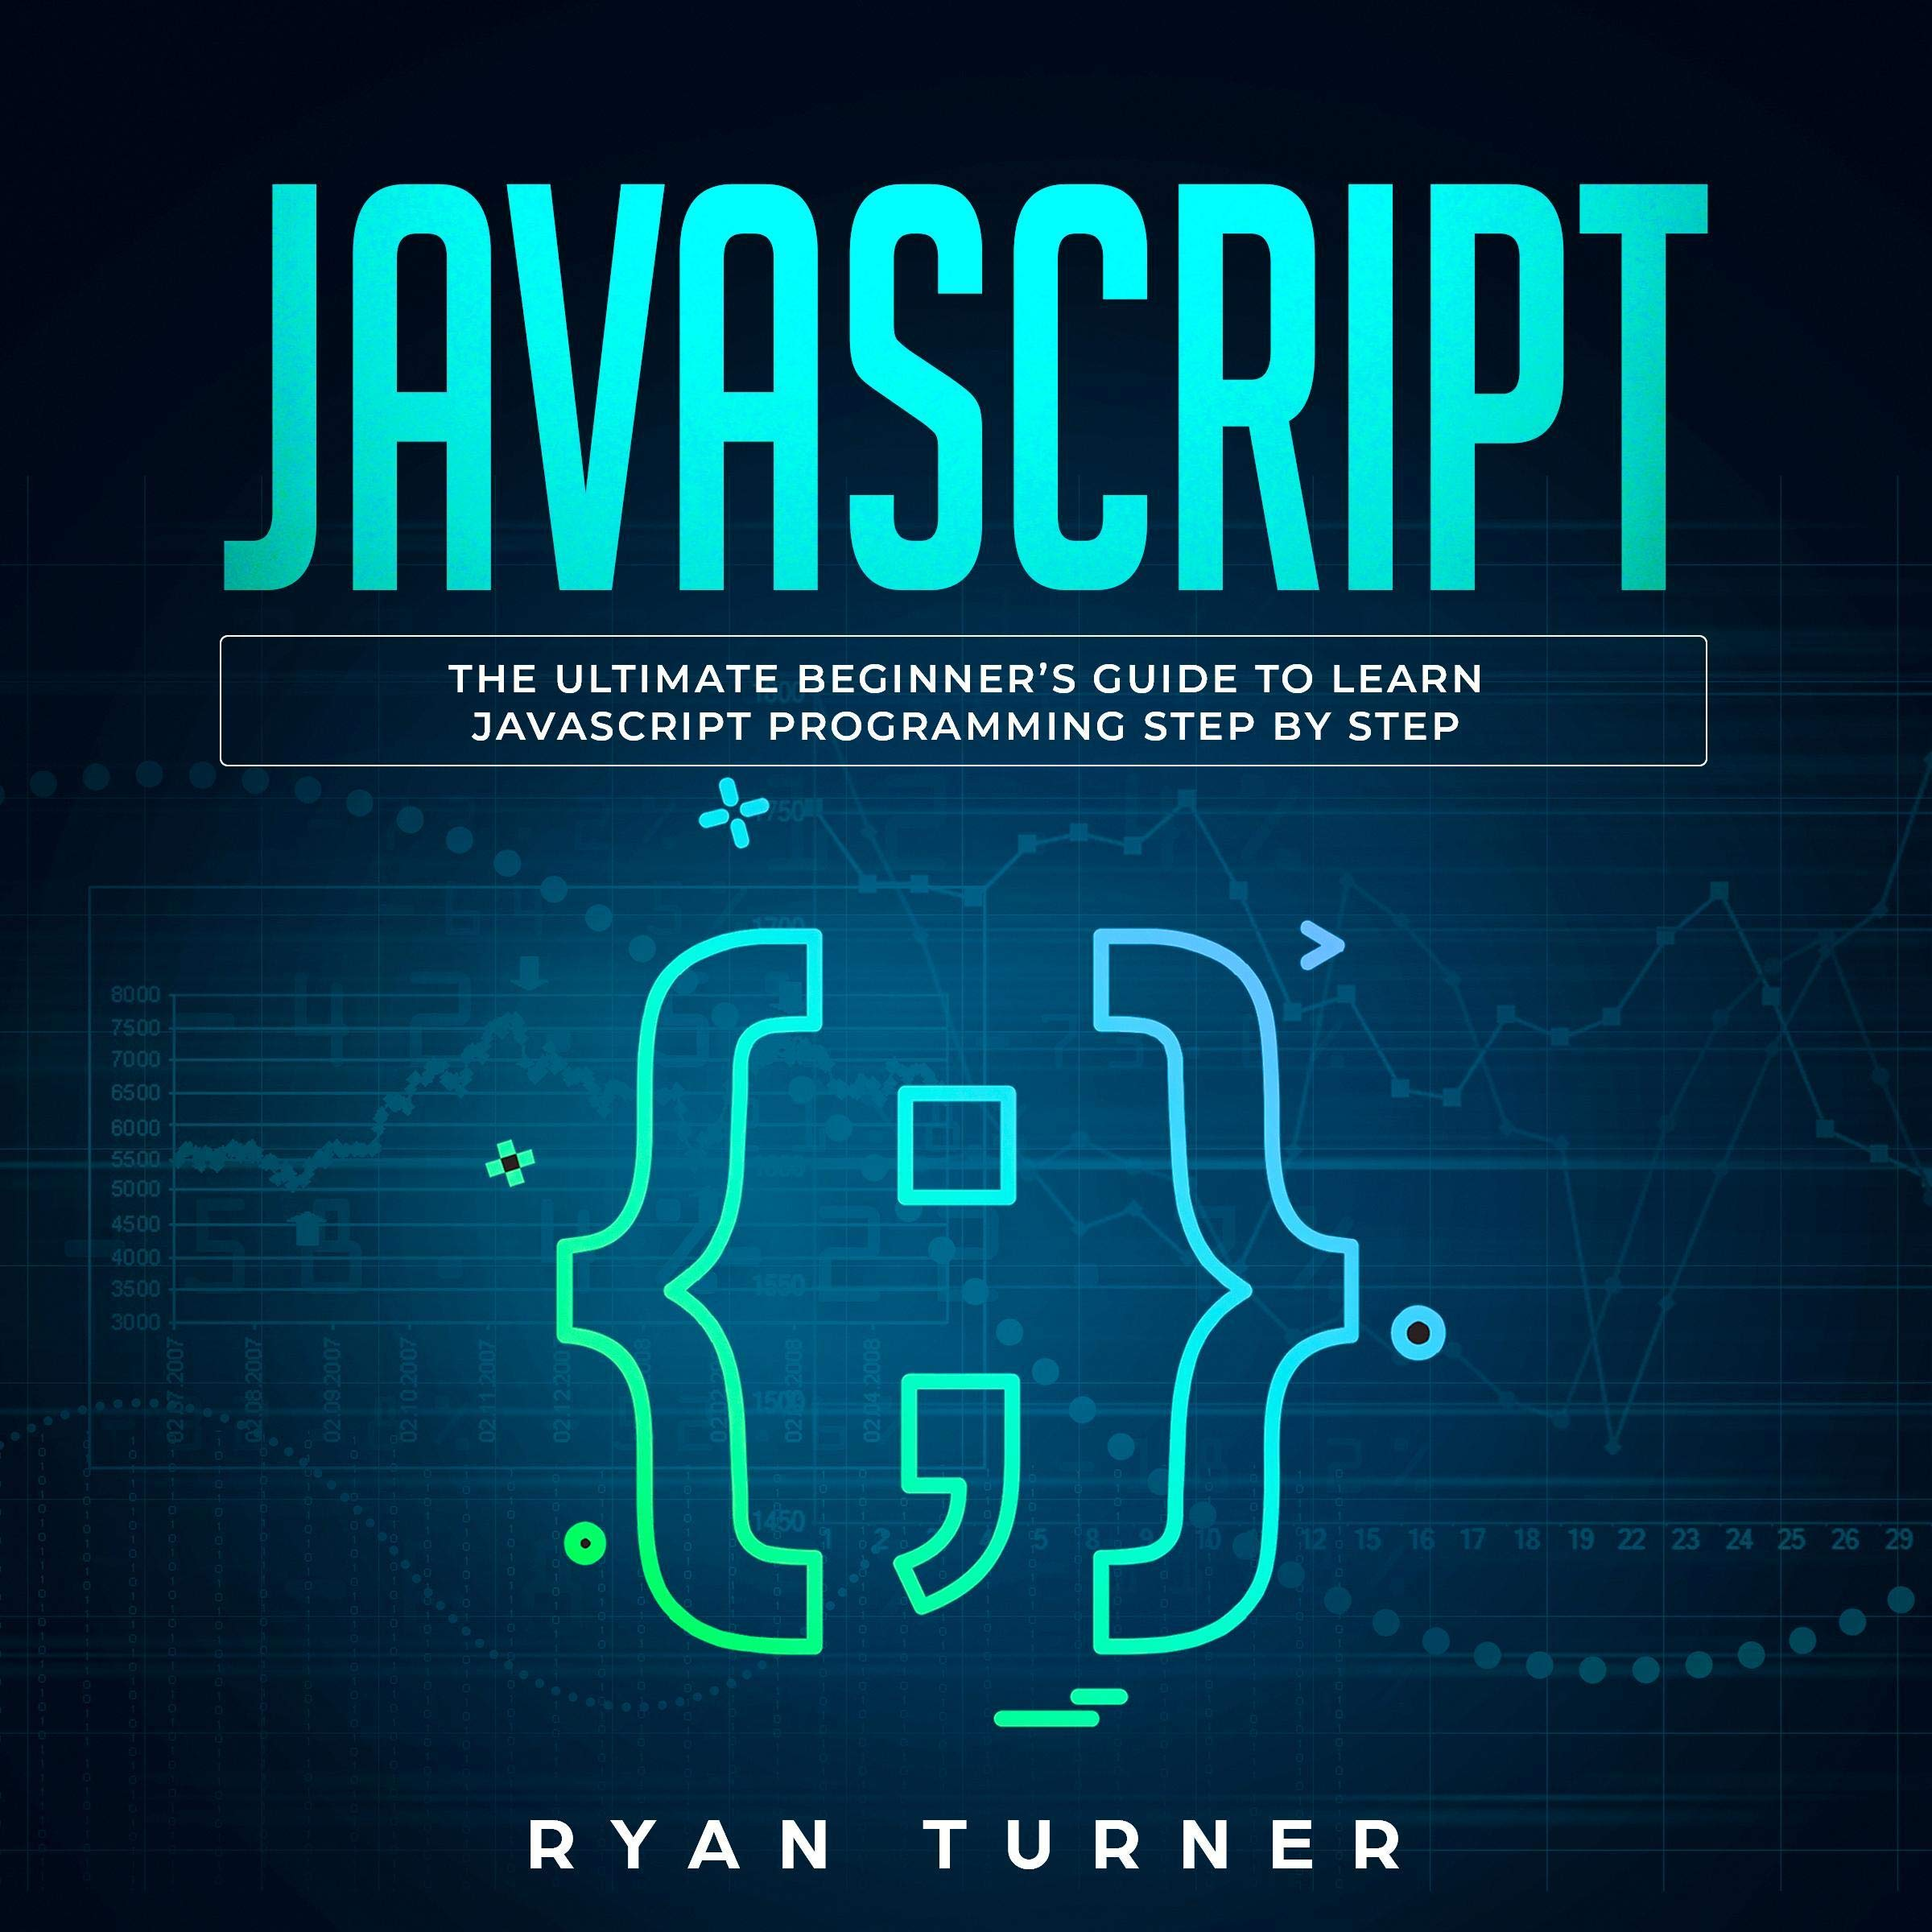 Javascript: The Ultimate Beginner's Guide to Learn JavaScript Programming Step by Step